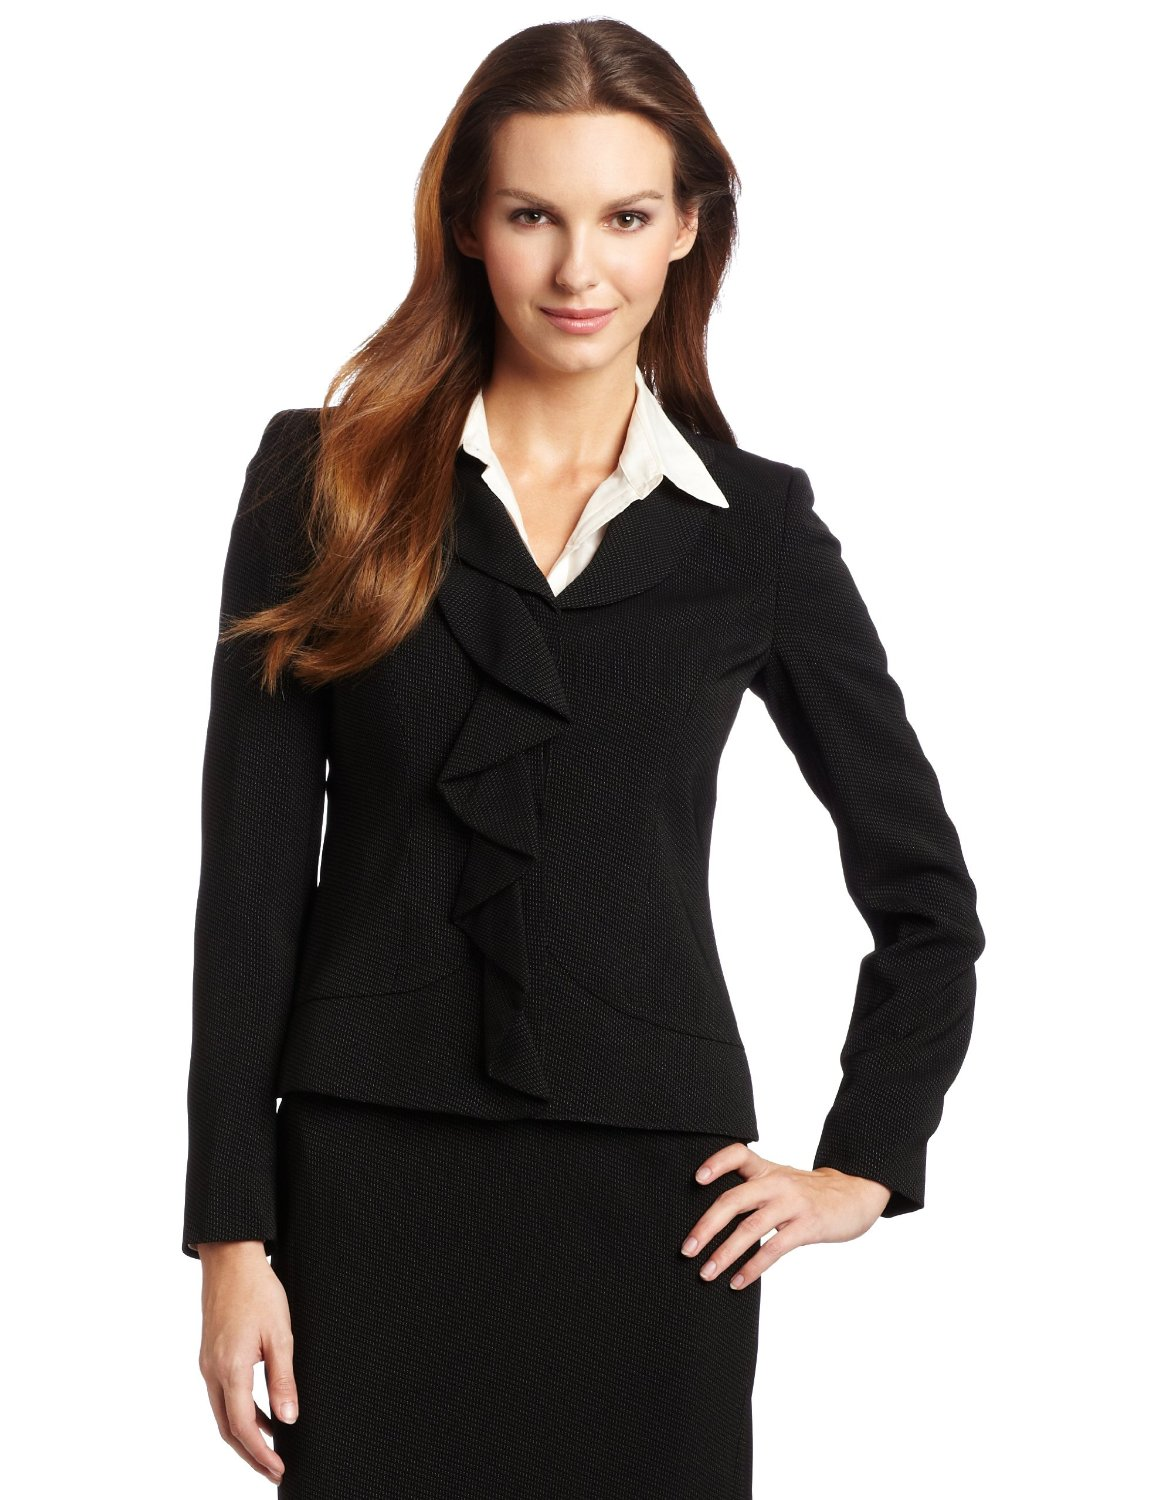 Unique Business Casual Dress Code For Women Pictures Naf Dresses